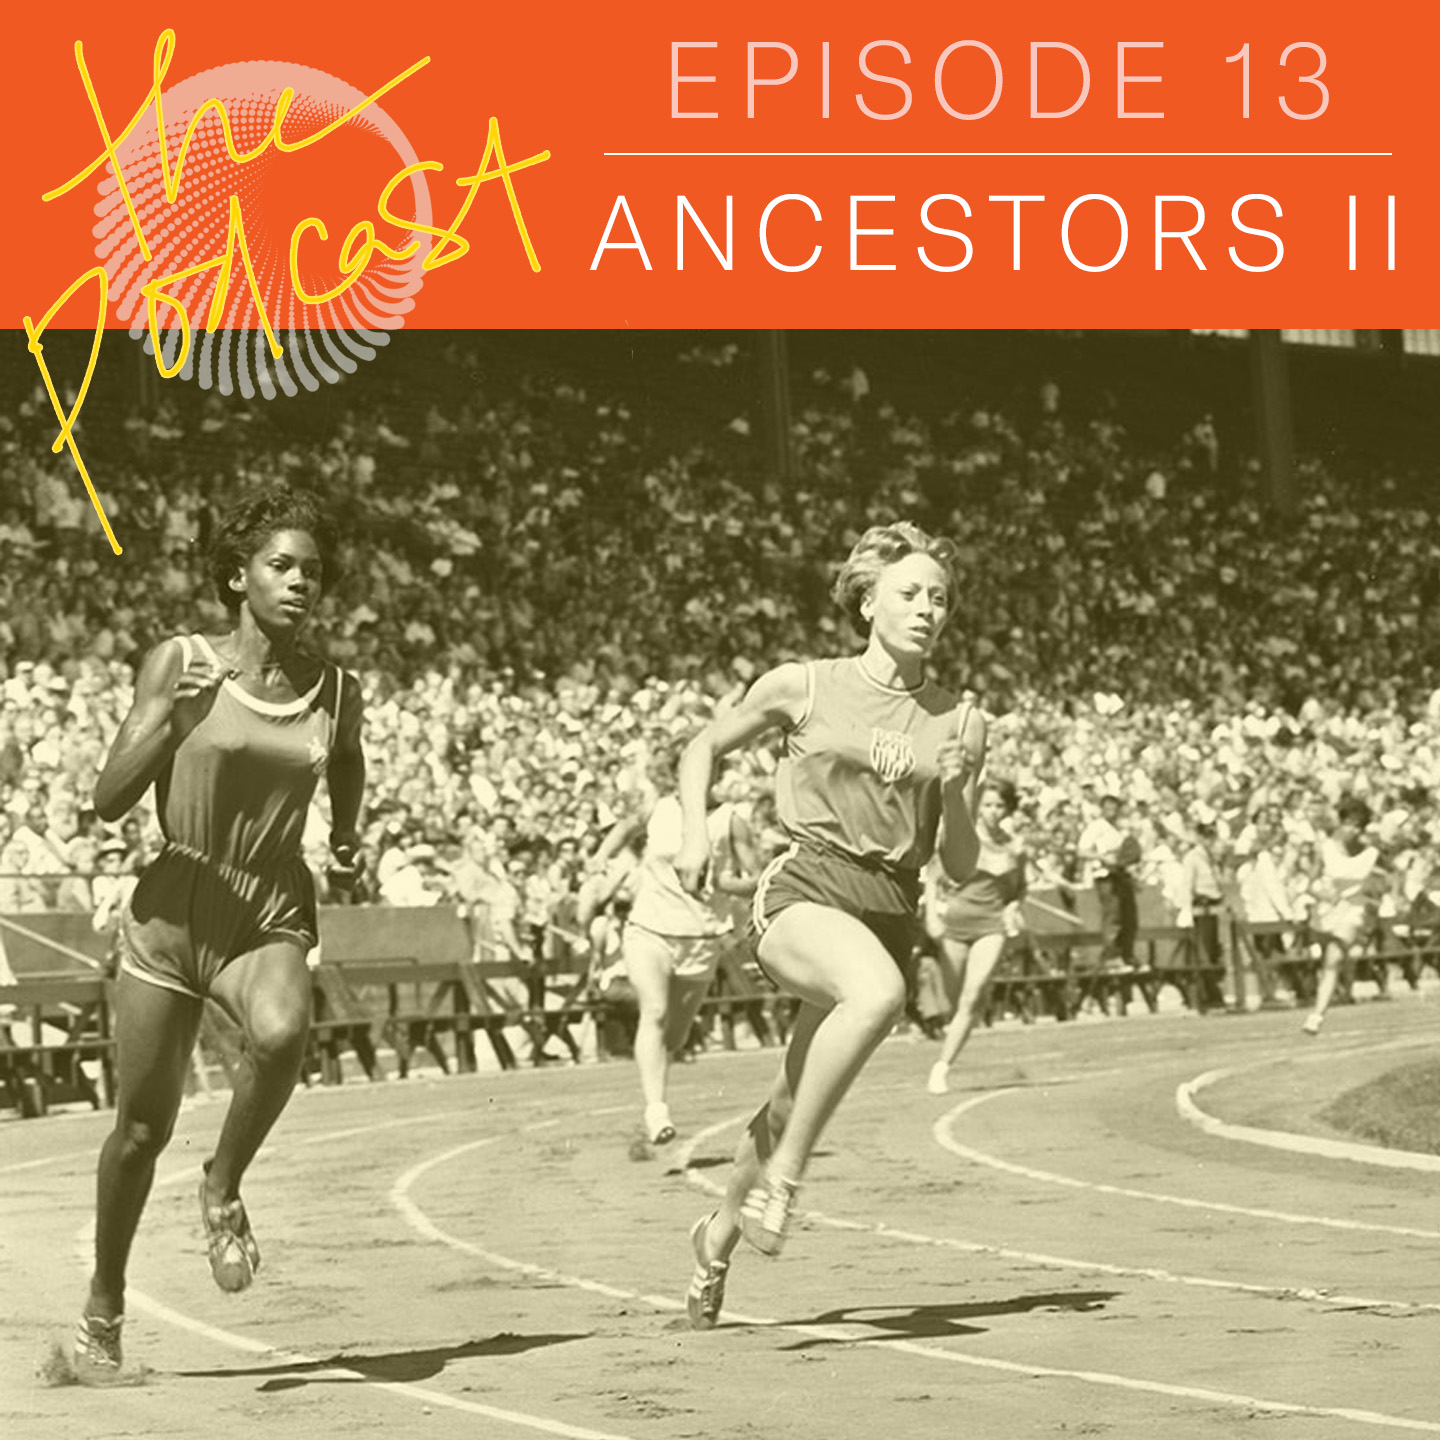 Episode 1.13: Ancestors II   EXAMINING YESTERDAY'S ACTIONS TO UNDERSTAND TODAY'S REALITY  Tim and Tuesday continue on history, impact, and our world, exploring how context fundamentally alters how we relate to each other. ||  For show notes, visit the episode page.  || MARCH 5, 2019